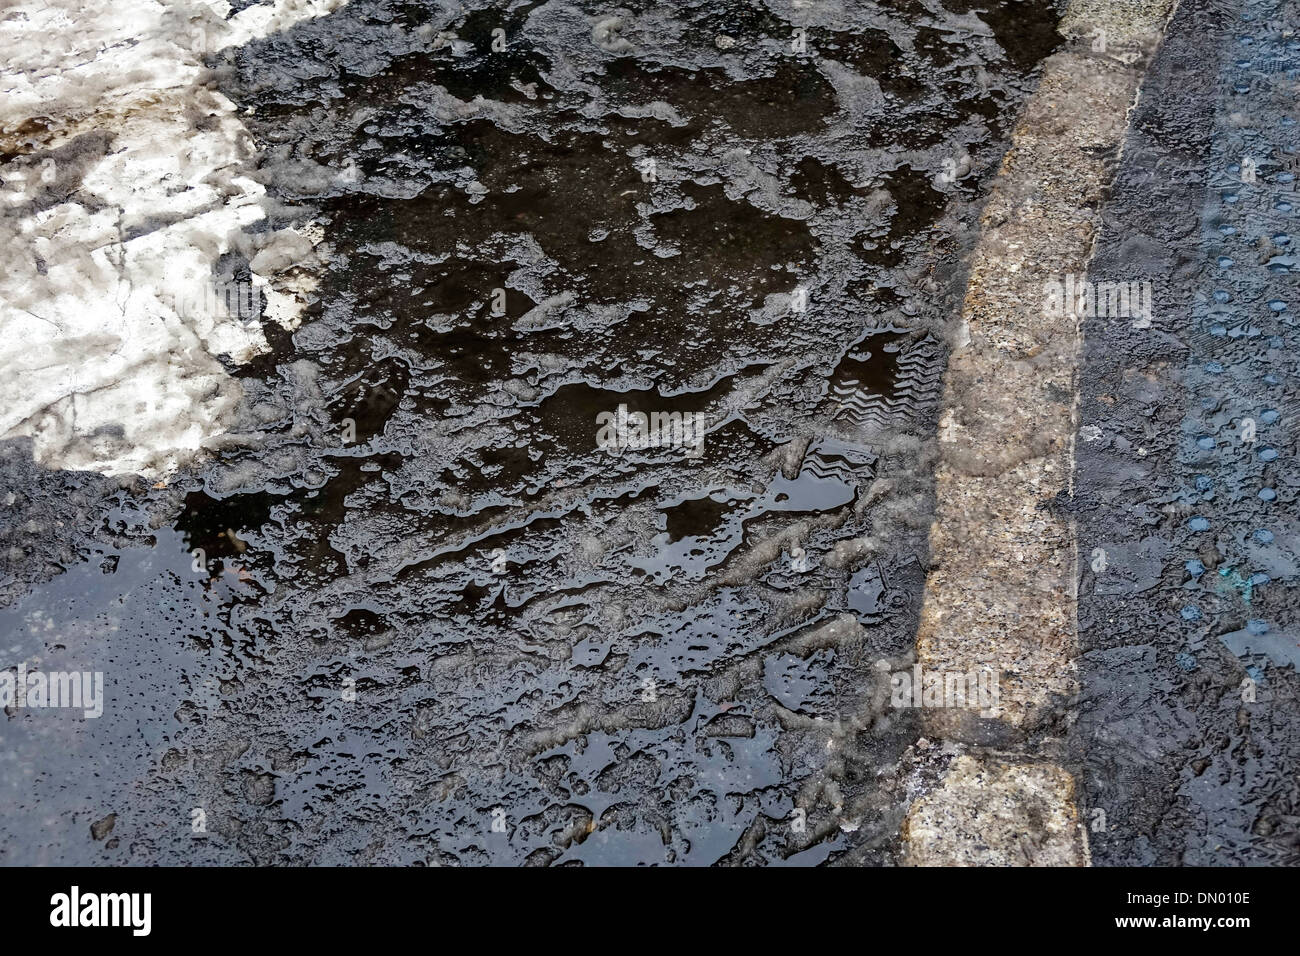 Slush and snow and an icy puddle in the street in New York City winter - Stock Image